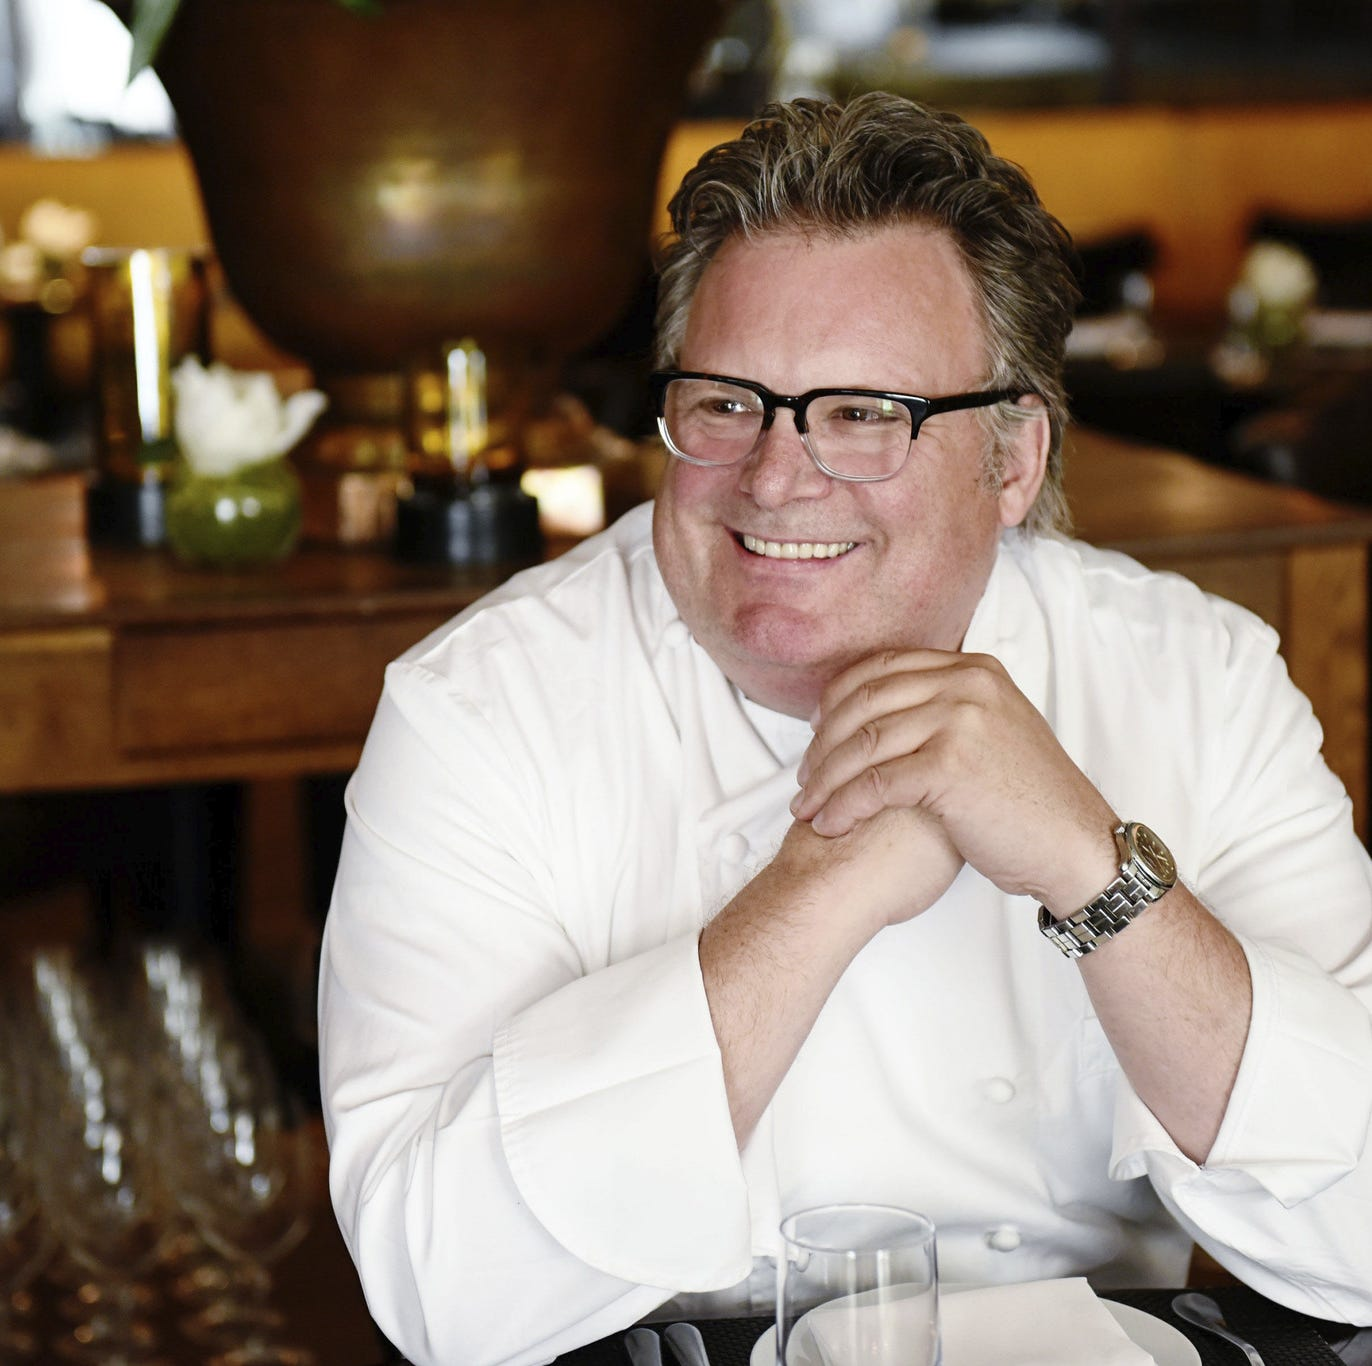 Culinary giant David Burke takes over kitchen at 140-year-old Orange Lawn Tennis Club